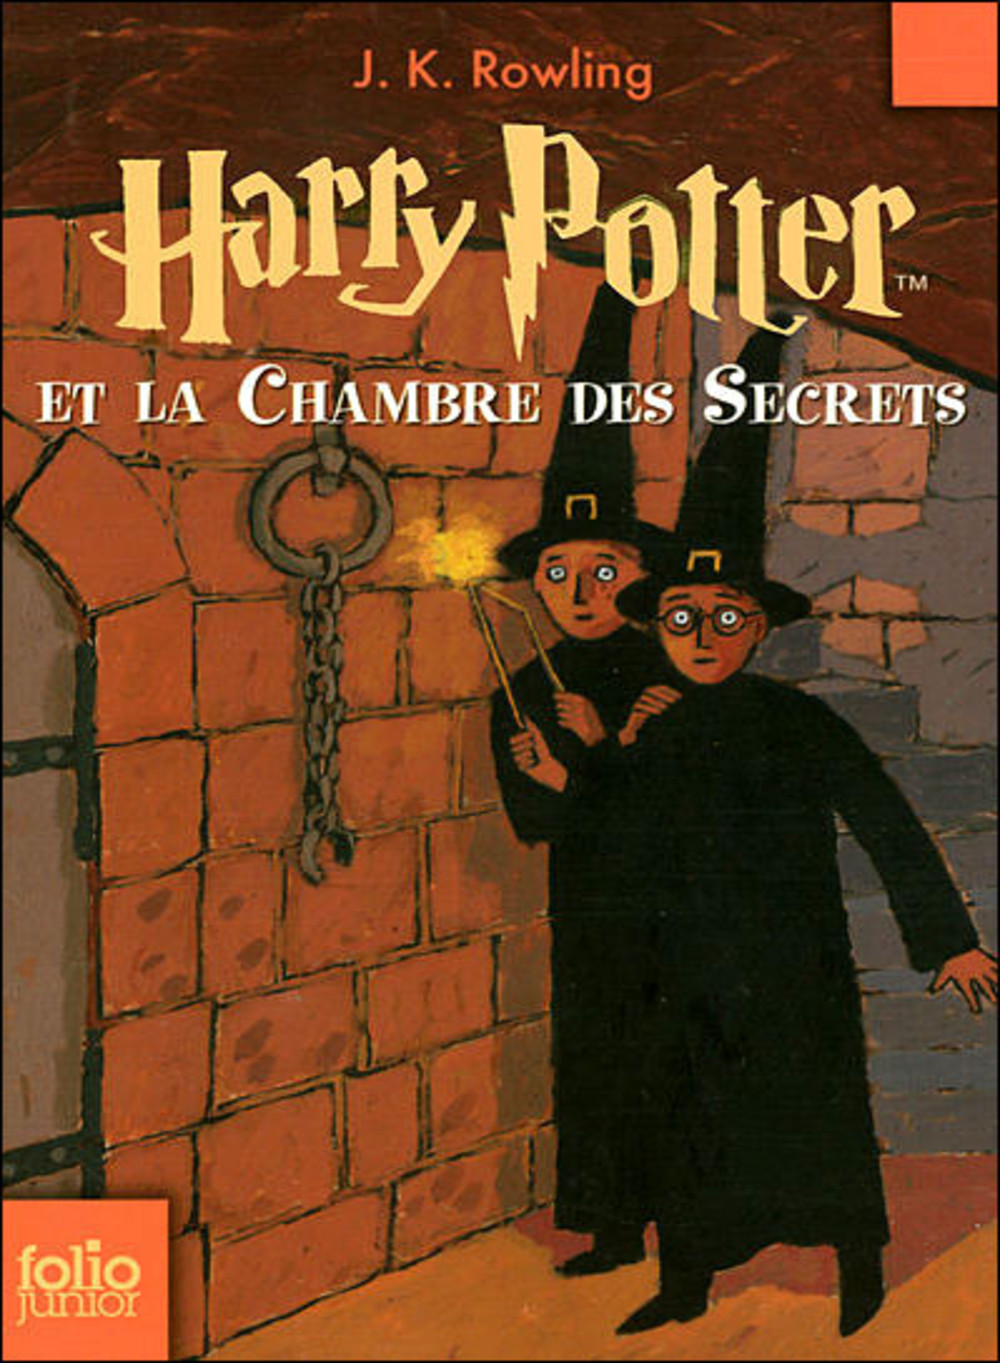 Harry potter and the chamber of secrets harry potter et la for Regarder harry potter et la chambre des secrets